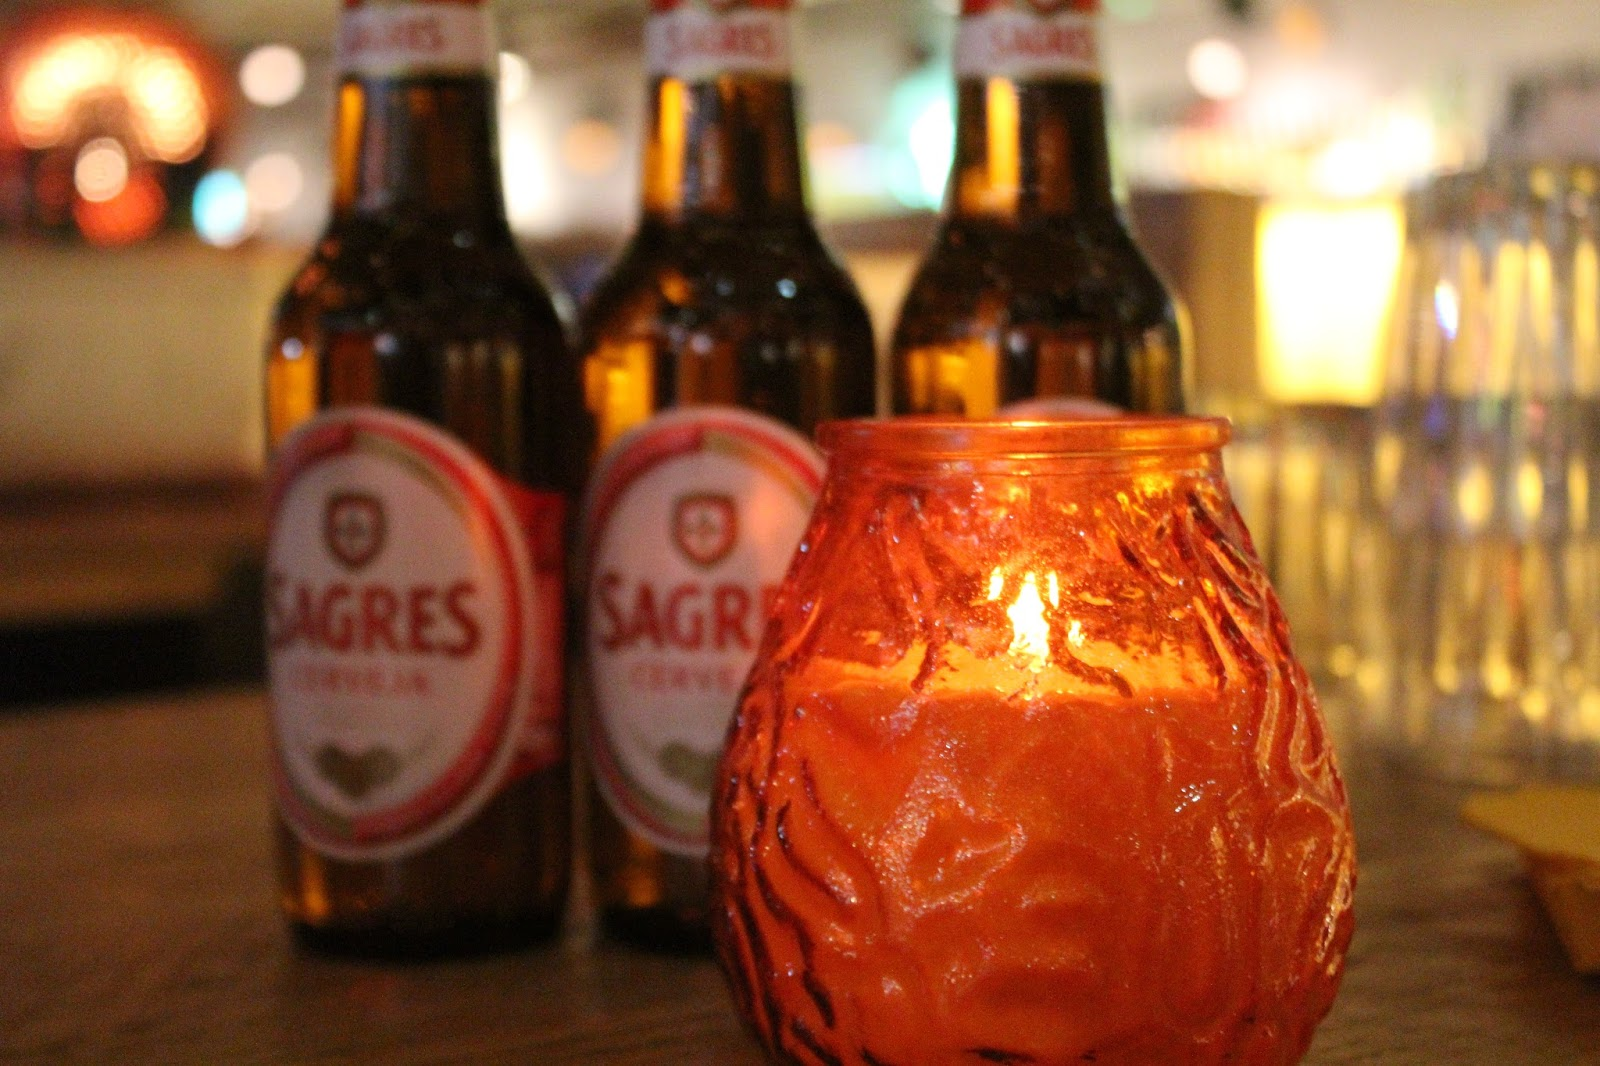 Sagres beer at Cabana Leeds